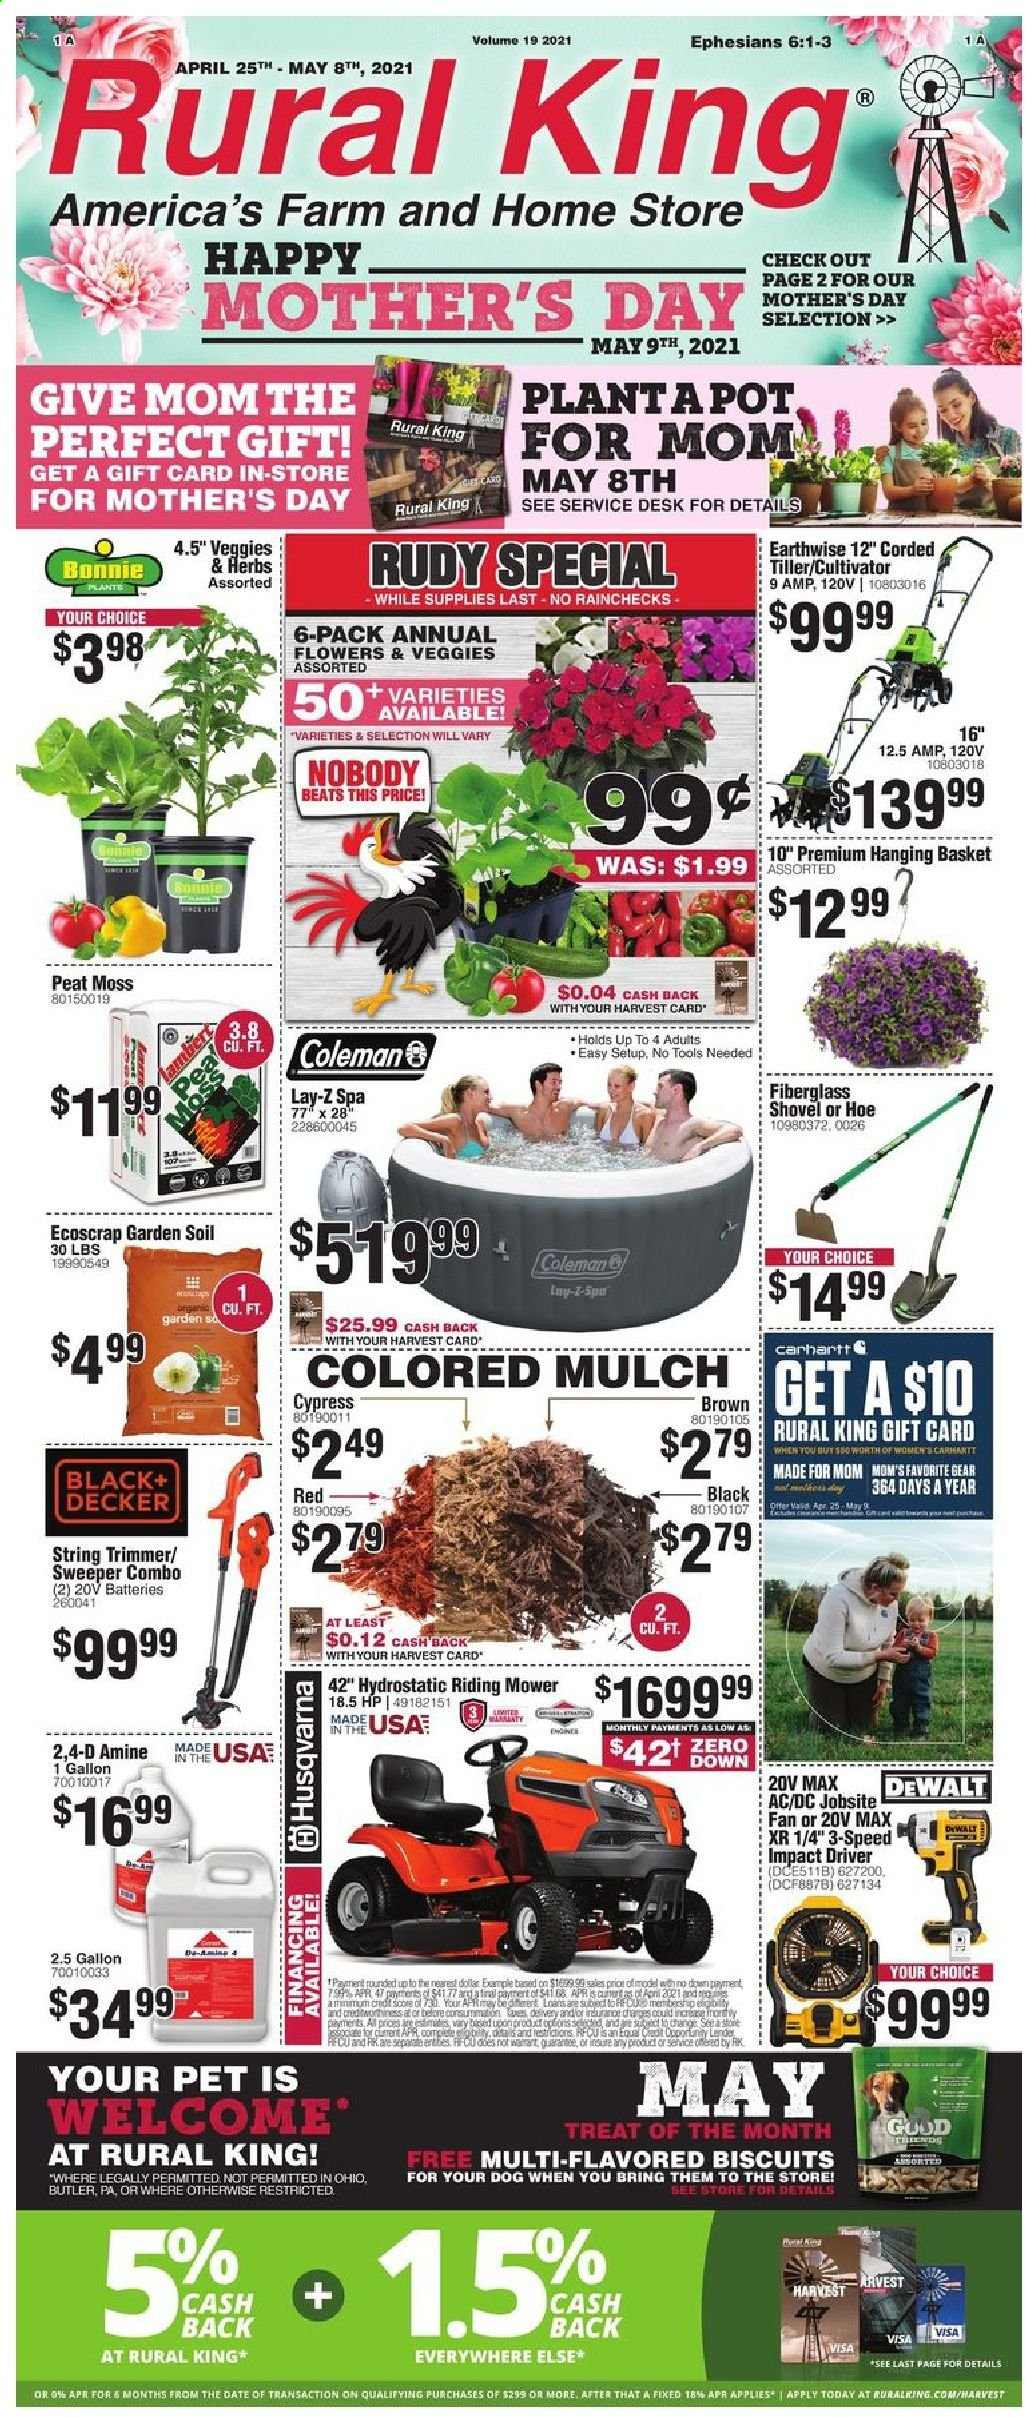 Rural King Flyer - 04.25.2021 - 05.08.2021 - Sales products - Coleman, biscuit, basket, pot, battery, Beats, HP, Black & Decker, DeWALT, impact driver, Husqvarna, string trimmer, trimmer, shovel, flowers, garden soil, garden mulch. Page 1.